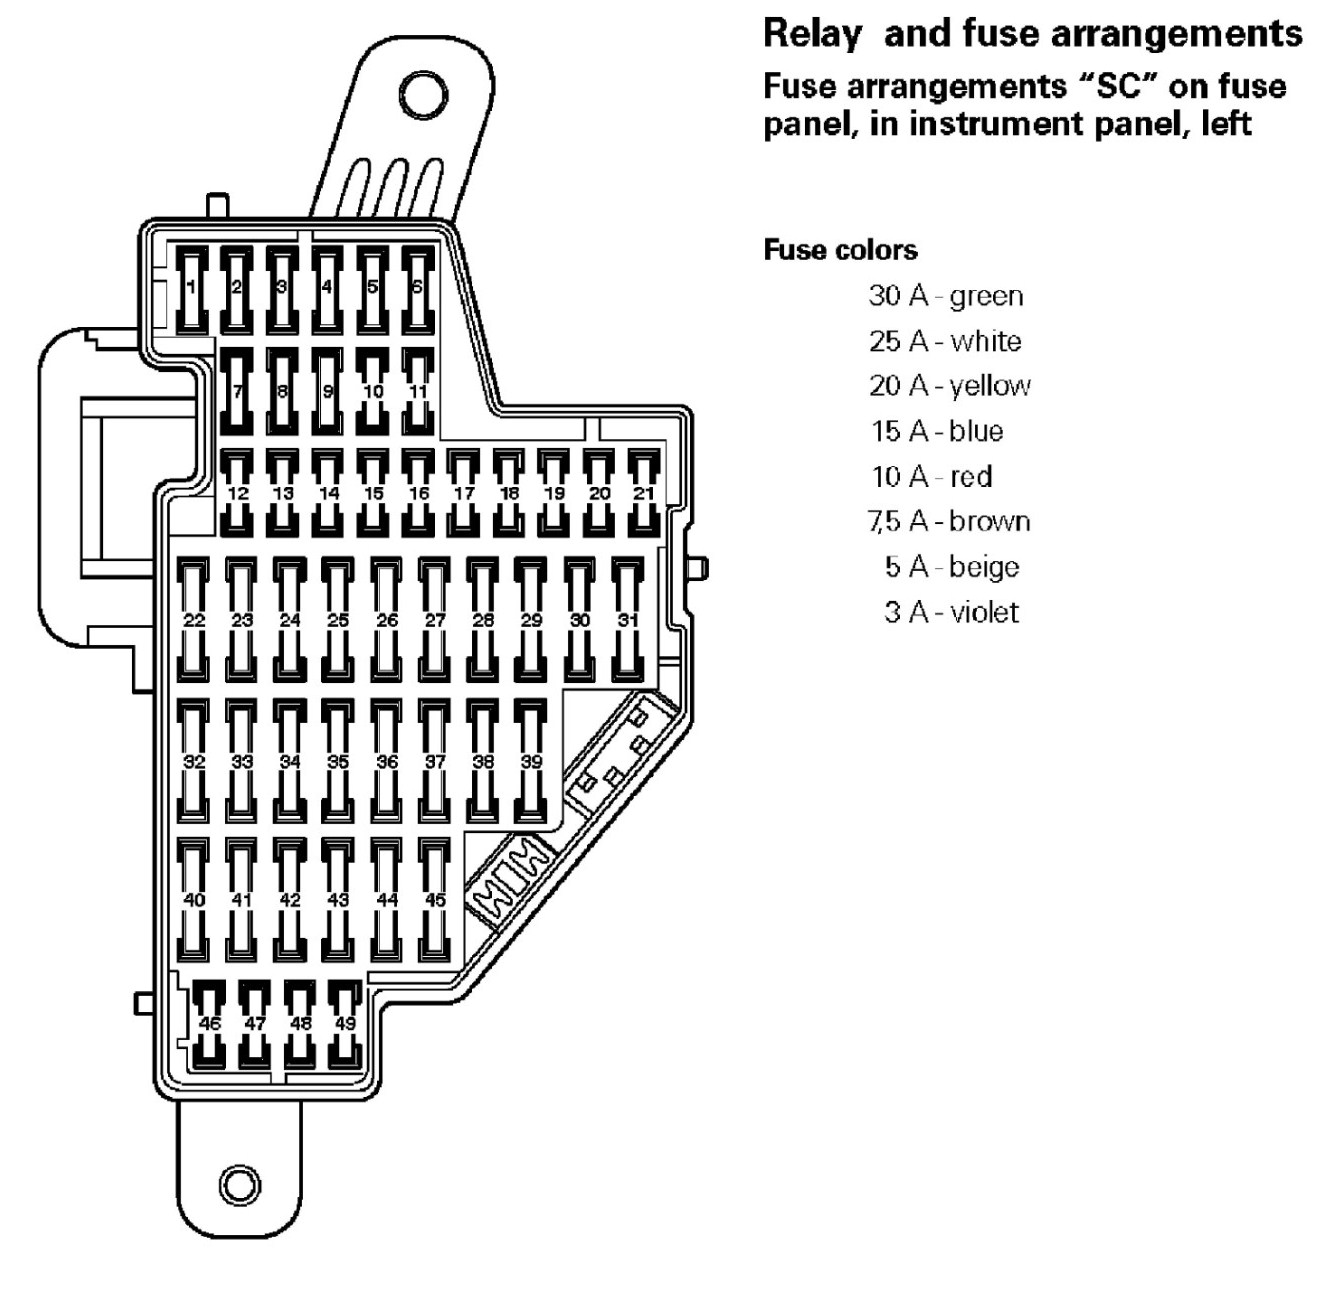 2009 jetta fuse box wiring diagram write 2009 dodge fuse box 09 jetta fuse box wiring data diagram 2009 jetta 30 fuse box 09 jetta fuse box